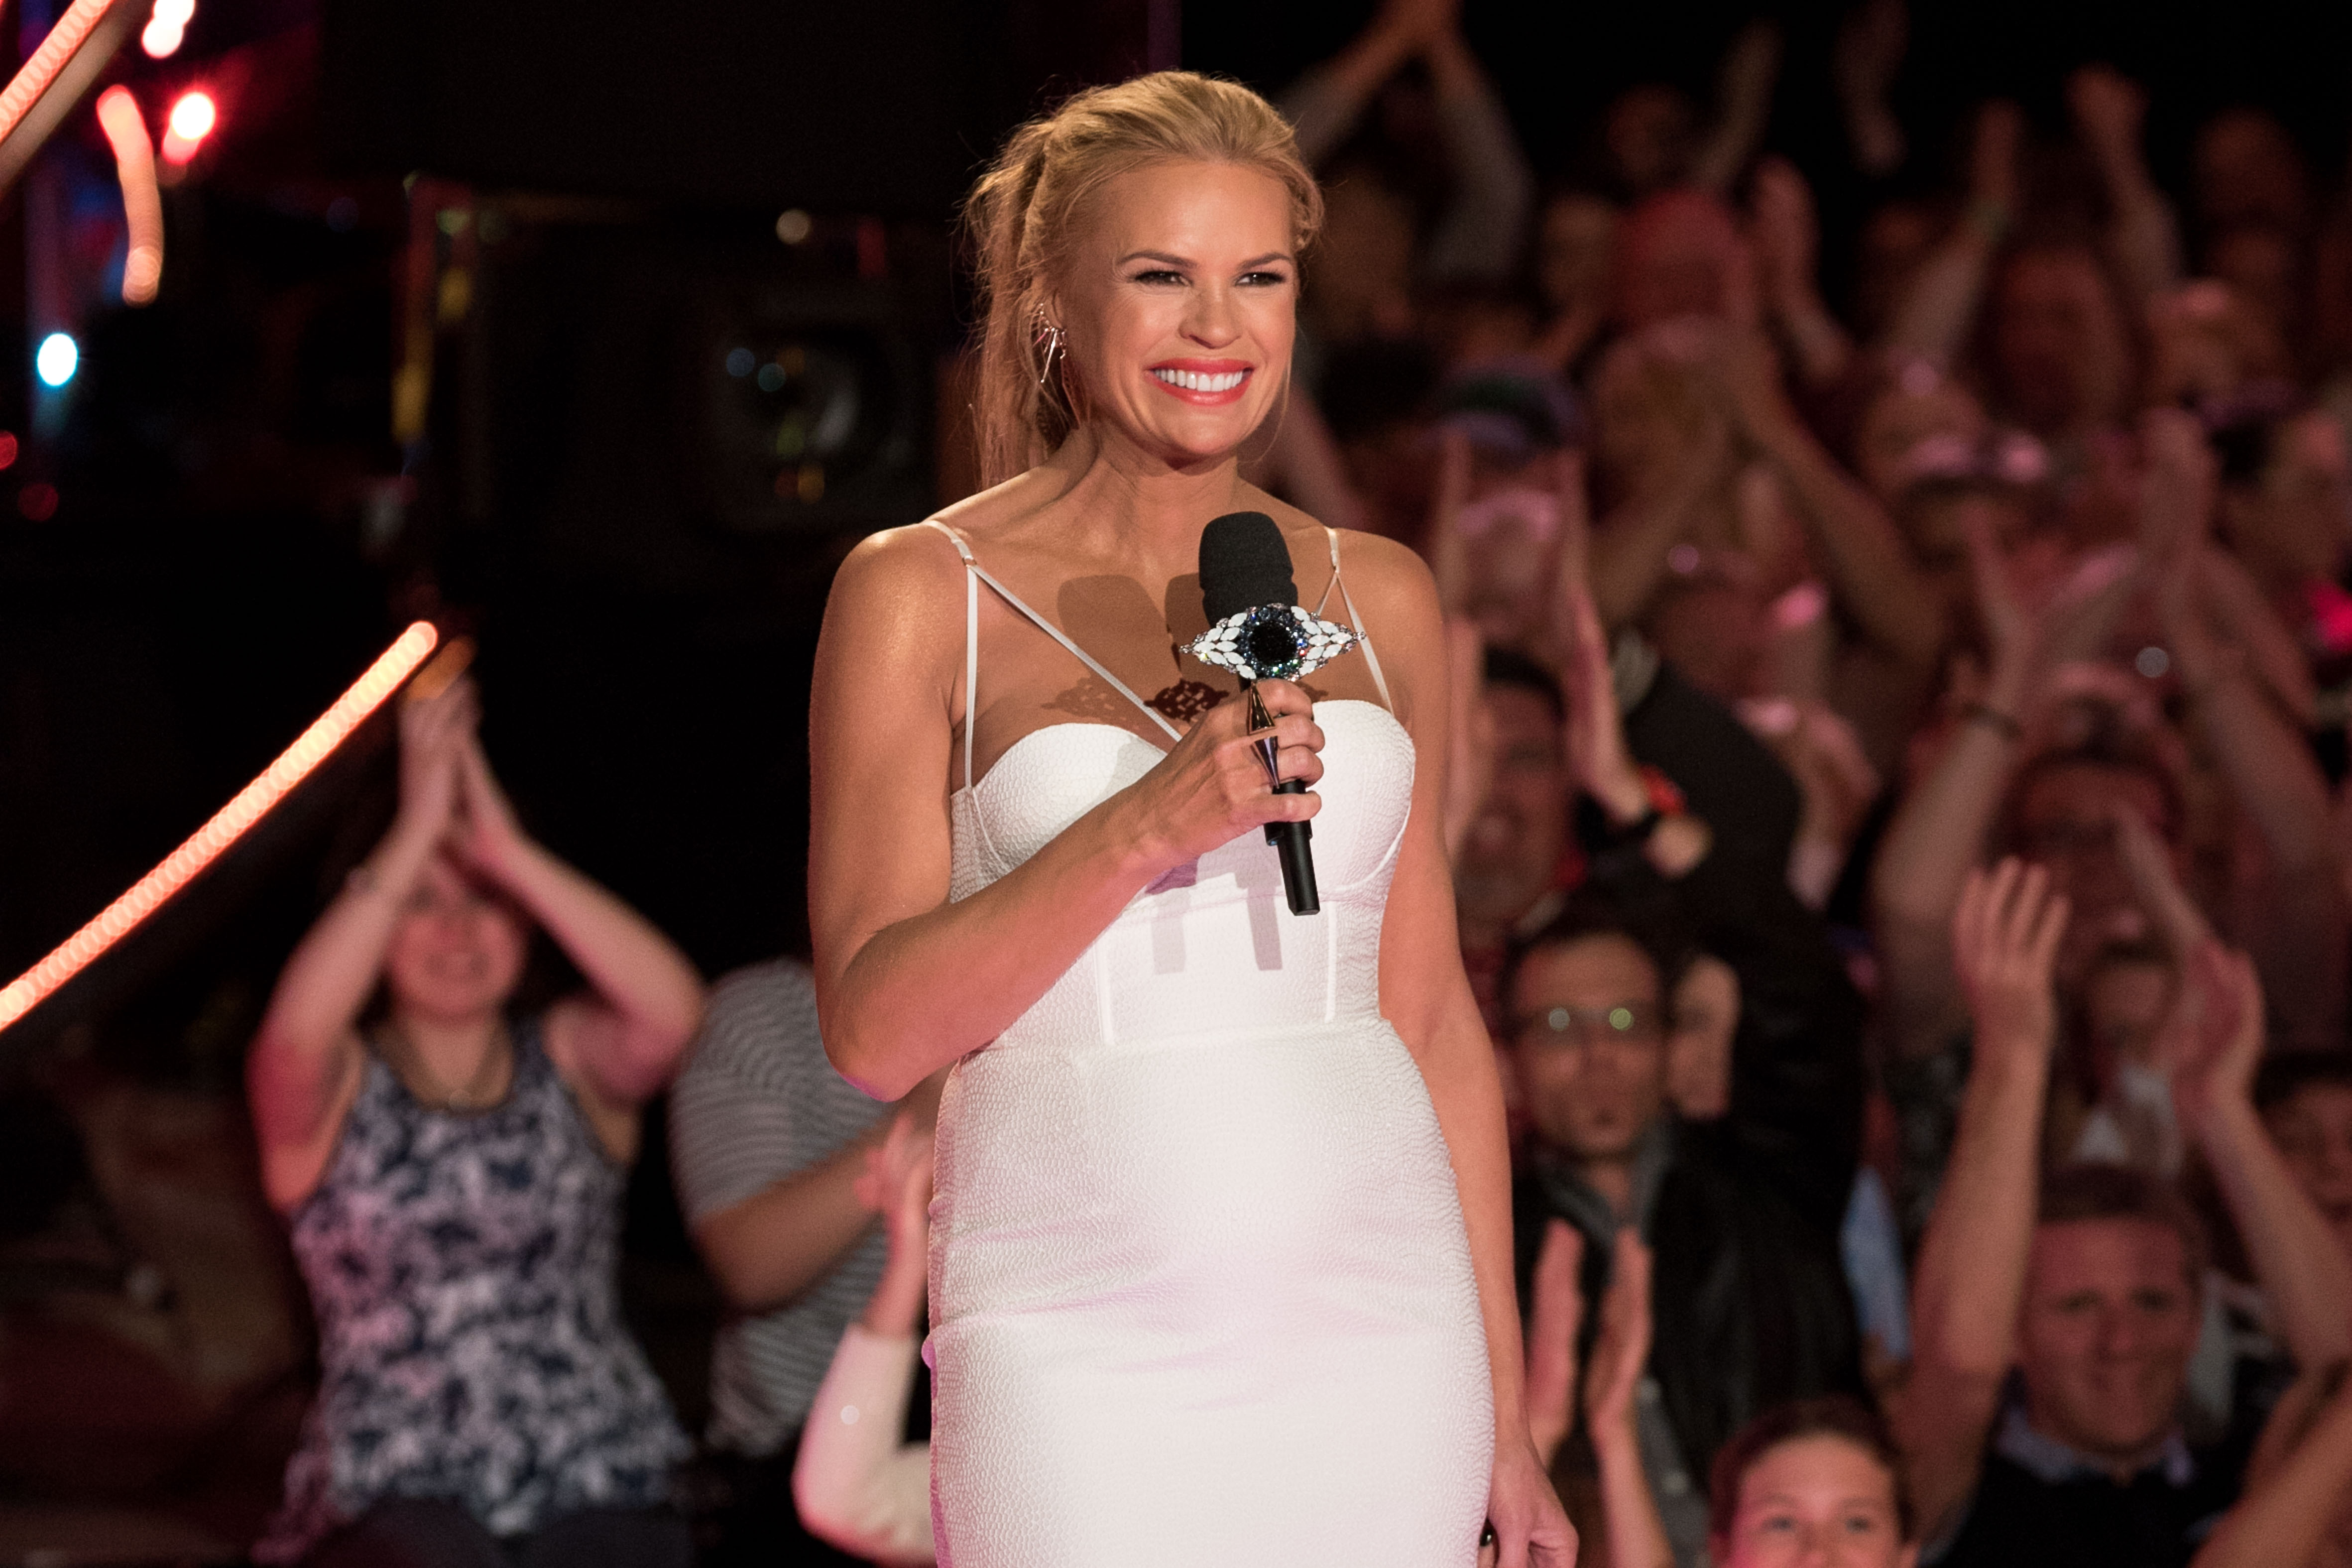 Brother Australia 2014 - Day 22 Recap - Cat is saved; Dion is evicted